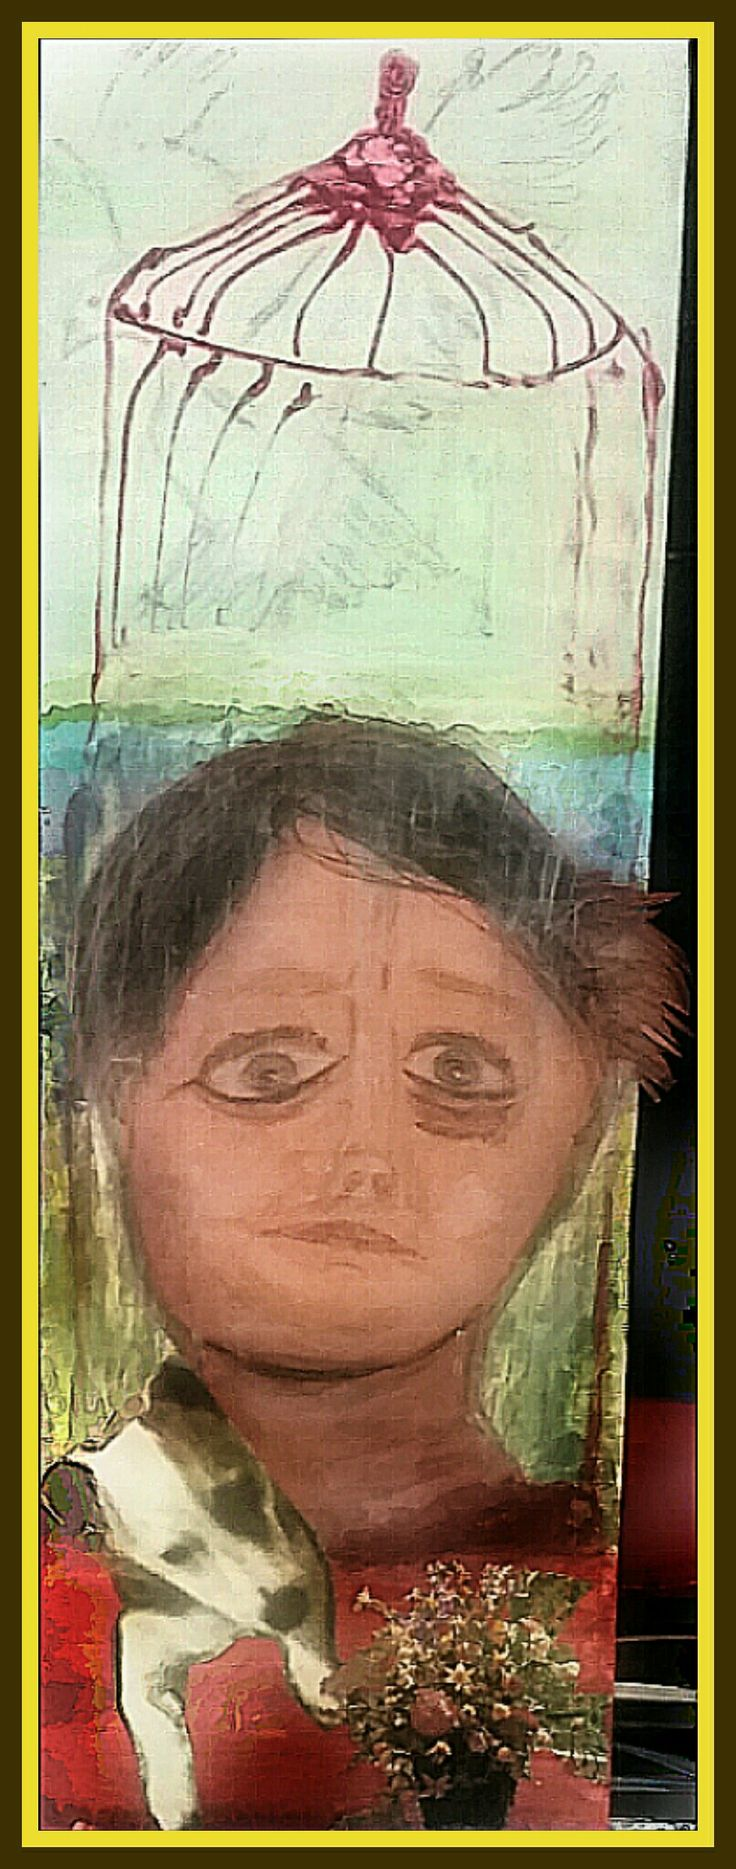 Self portrait. Charcoal, texta, pastel crayons and acrylic paint on brown cardboard and timber sheeting. Surrialist art style. Living with ptsd. Bible saying from the new testament. Don't conform to the things of this world; instead be transformed by the renewing of your mind.